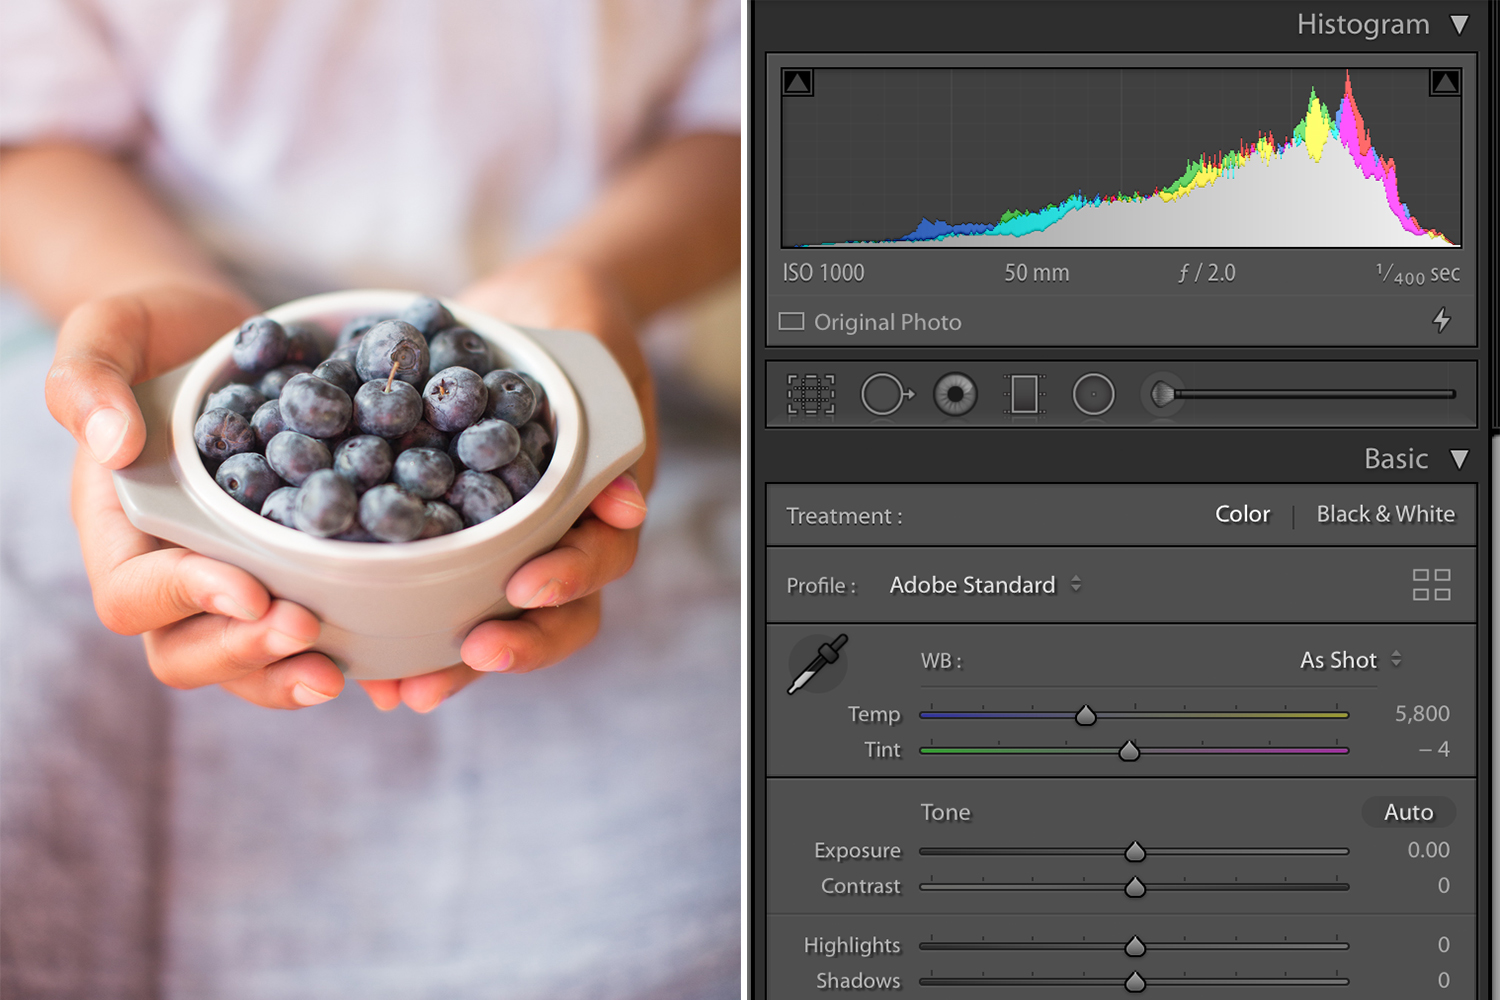 Color Adjustment in Lightroom Blueberries in a bowl Still Life Photo - How to Make Color Adjustments Using Tone Curves in Lightroom